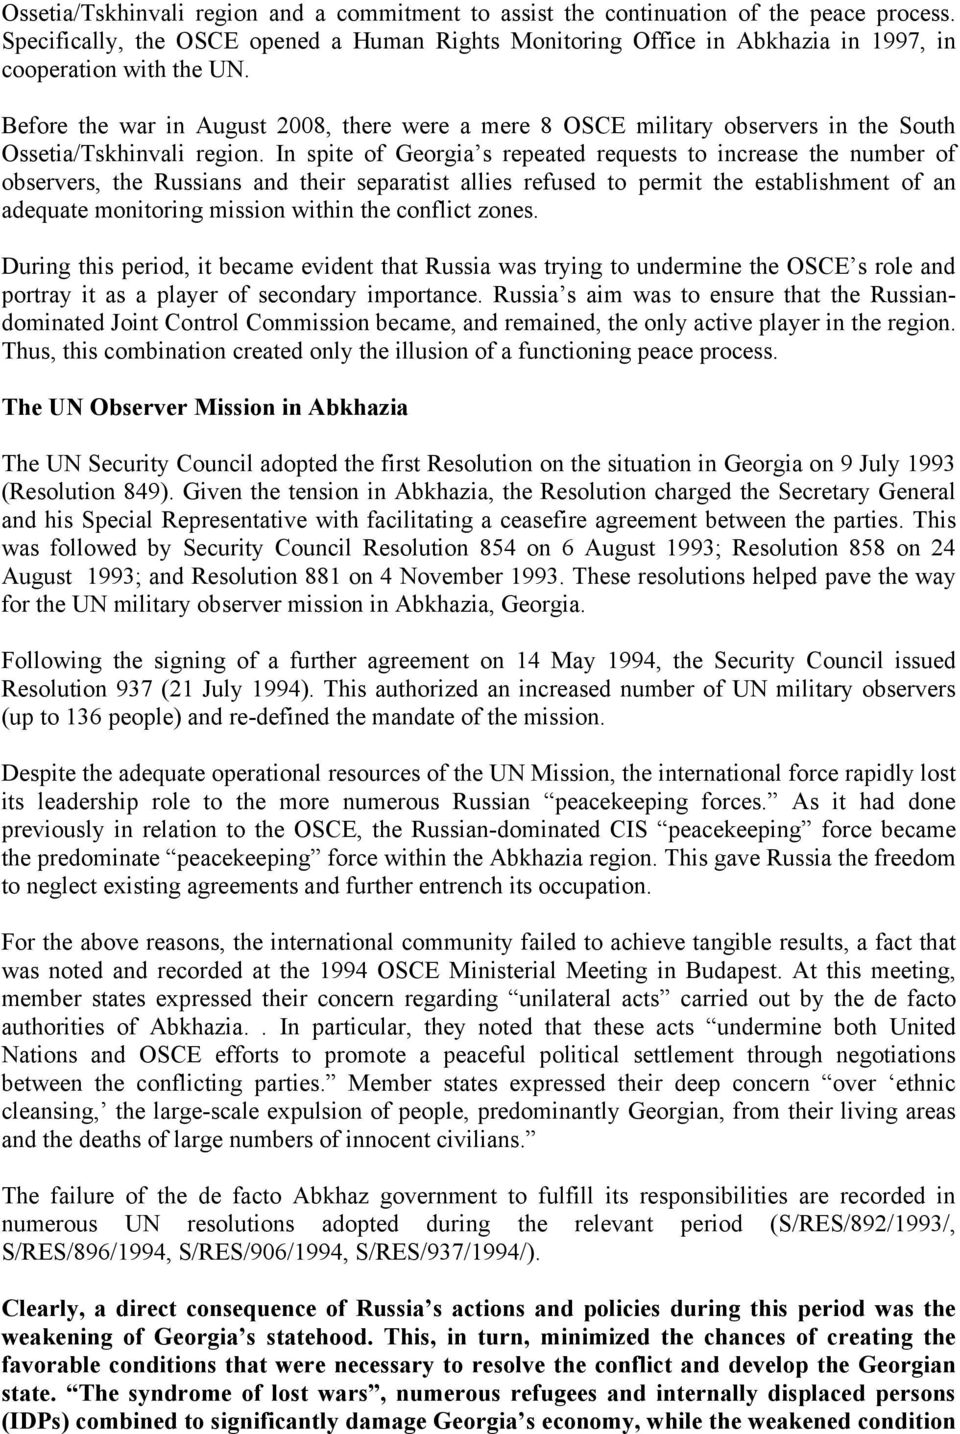 Before the war in August 2008, there were a mere 8 OSCE military observers in the South Ossetia/Tskhinvali region.